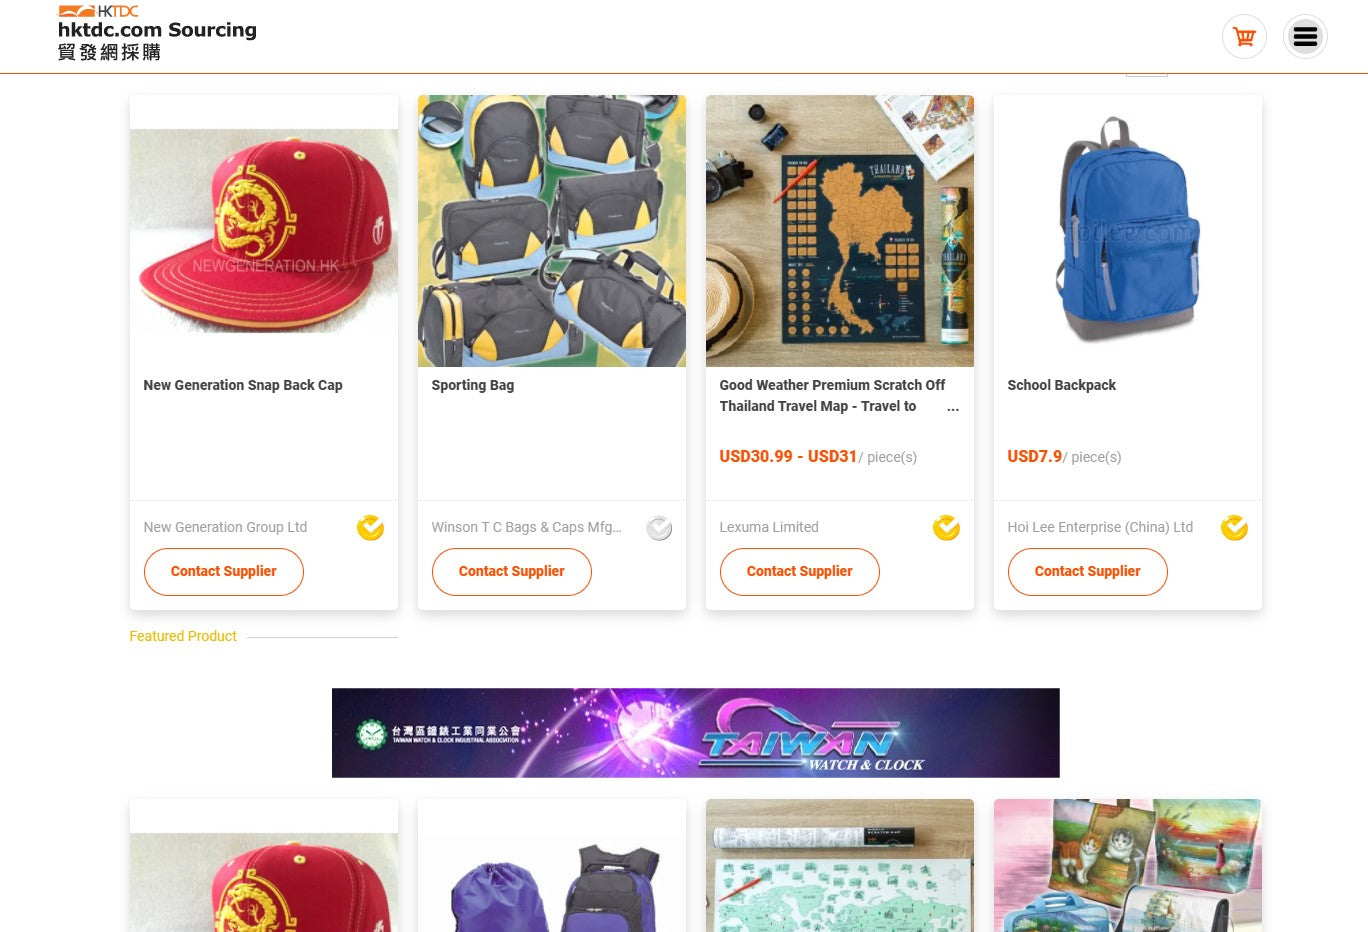 news-Lexuma-Agent-Product-Travel-Scratch-Maps-listed-on-the-Sourcing-on-hktdc-com-event-page-Hong-Kong-Gifts-and-Premium-Fair-travel-goods-web